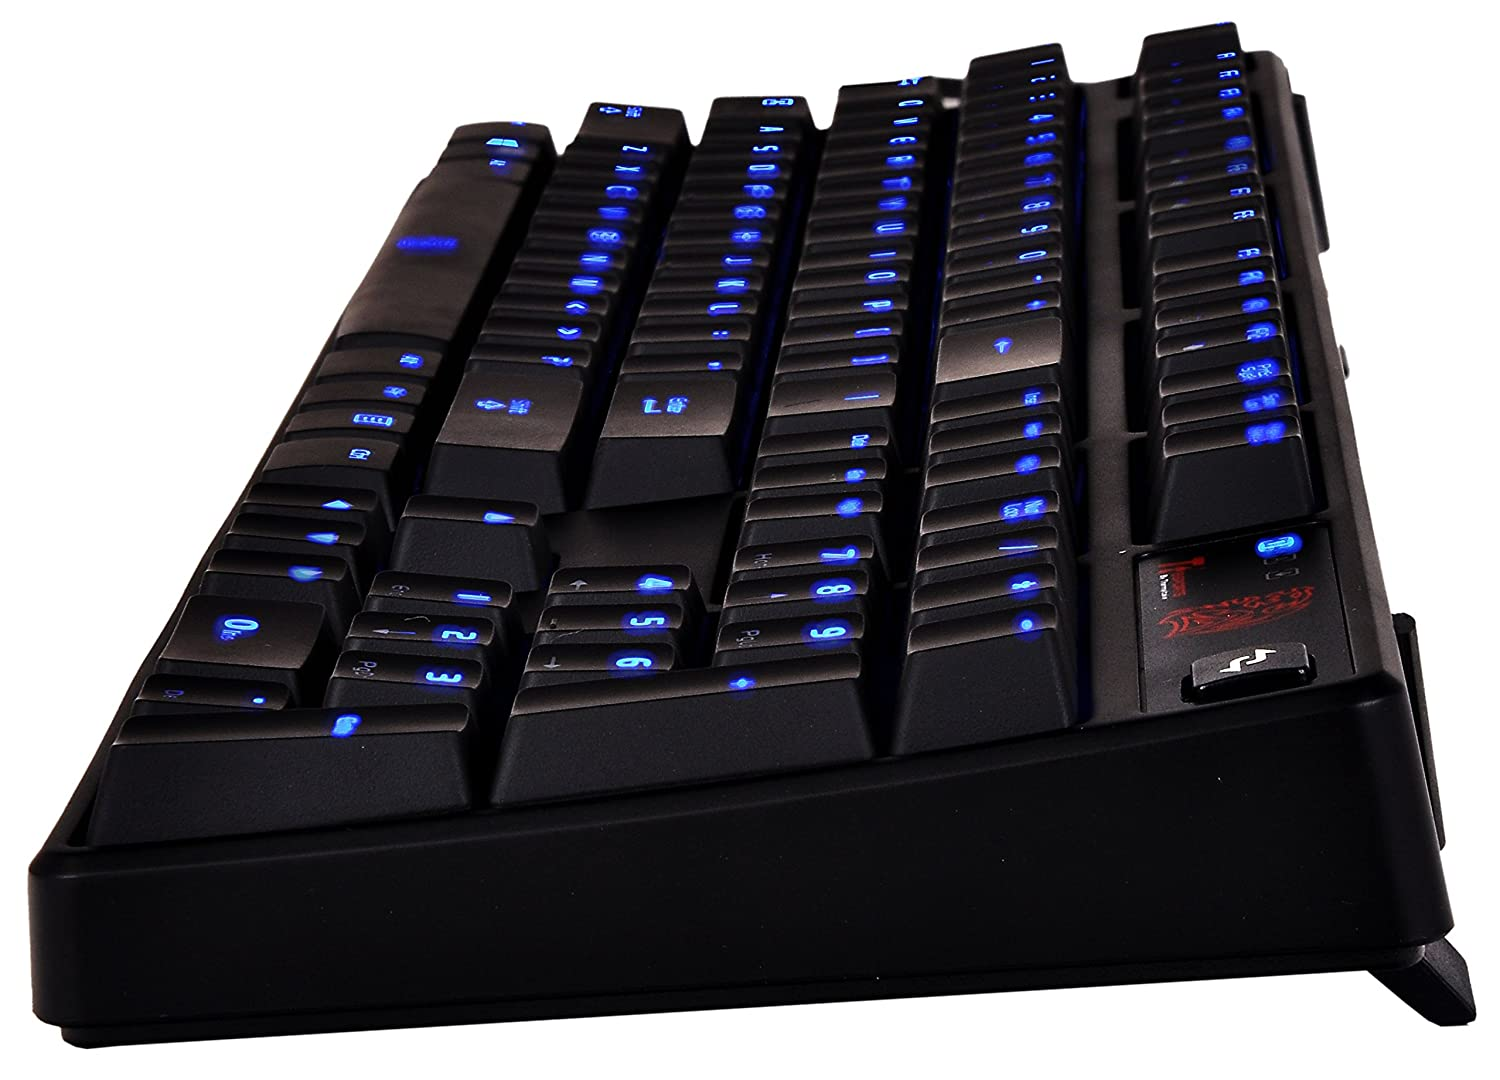 Top 5 PS4 Keyboards